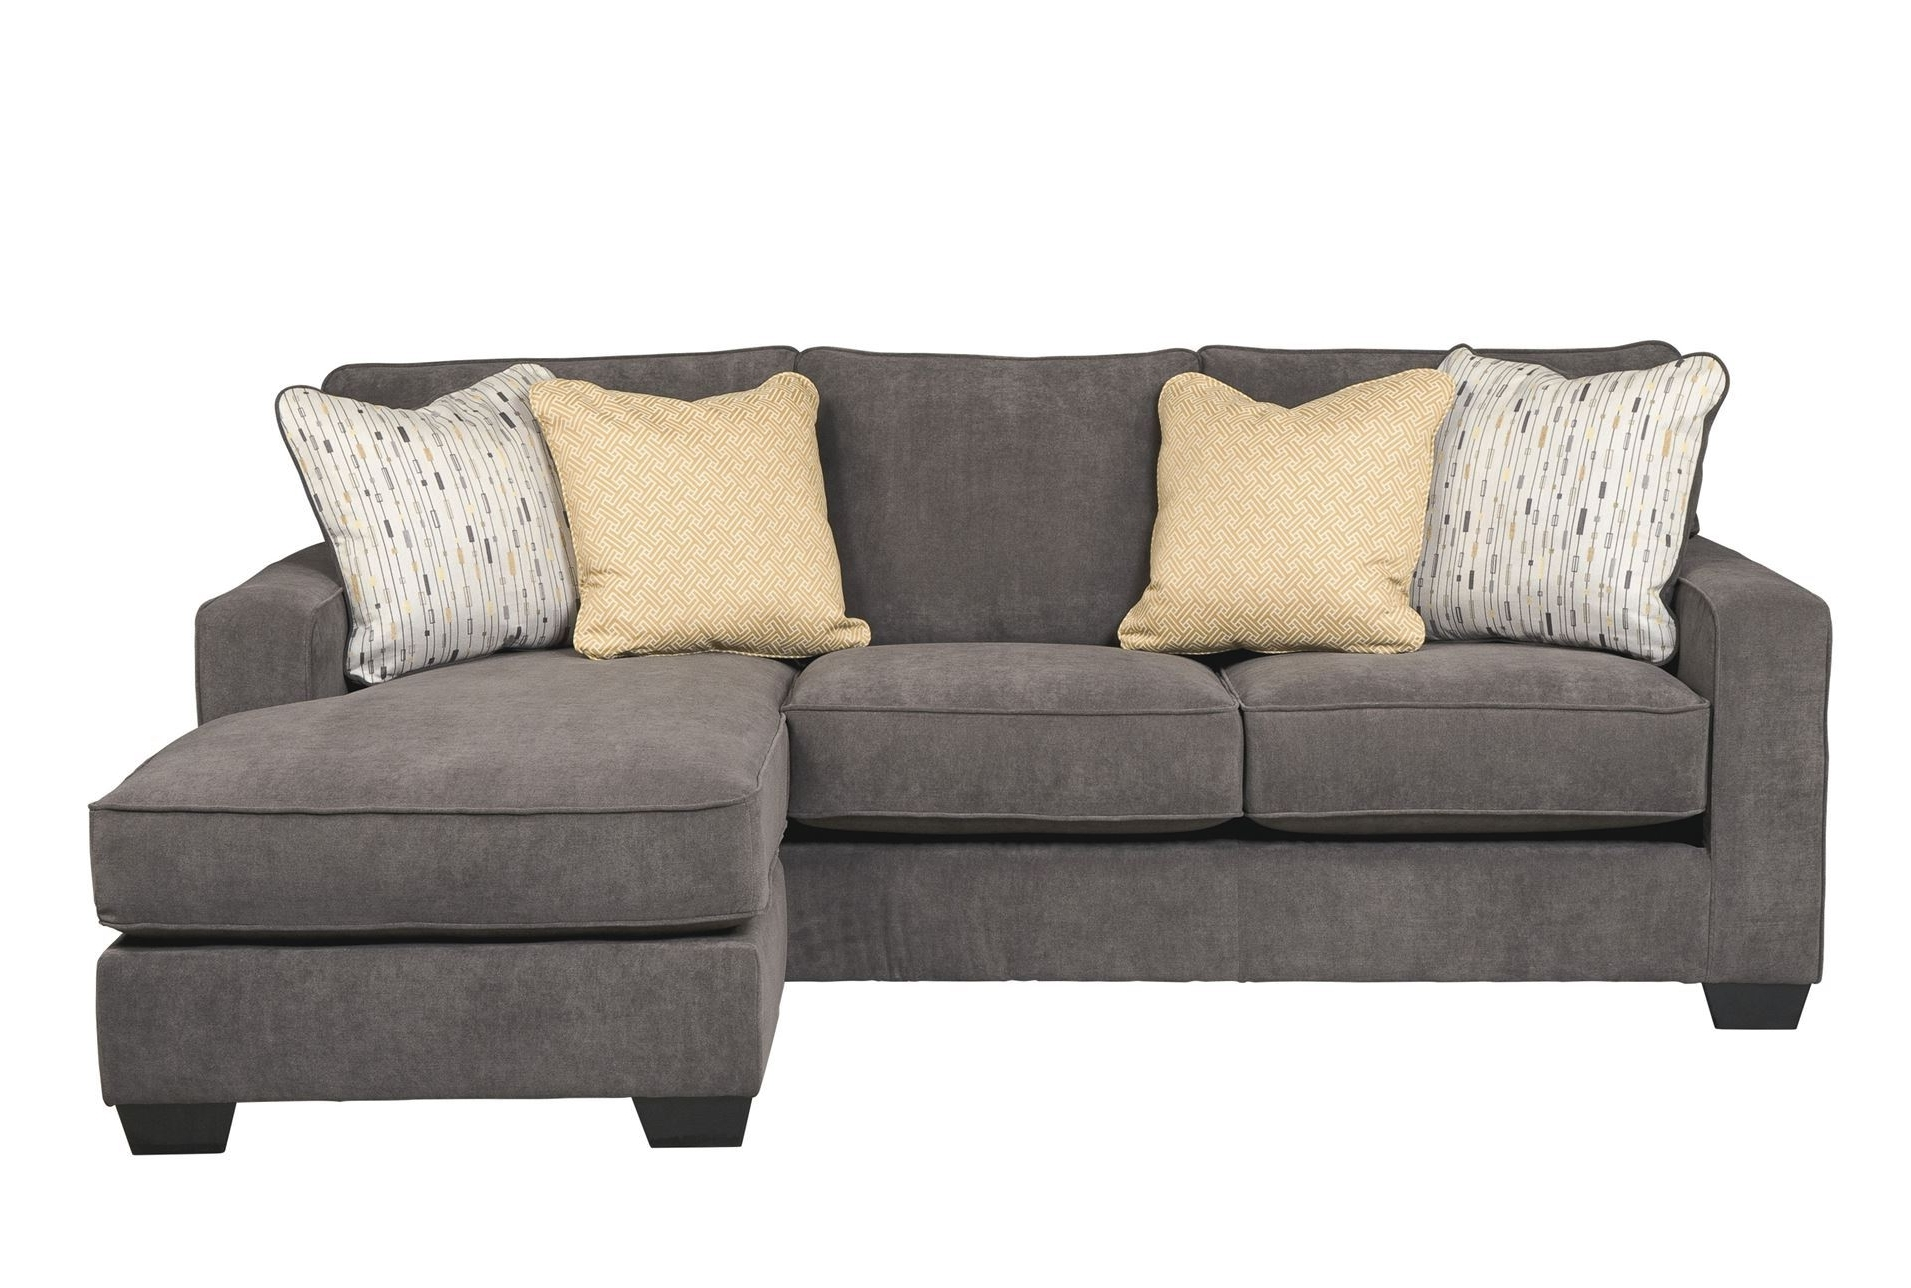 Most Current Grey Sectional Sofas With Chaise For L Grey Fabric Sectional Couch With Chaise And Three Seats (View 10 of 15)